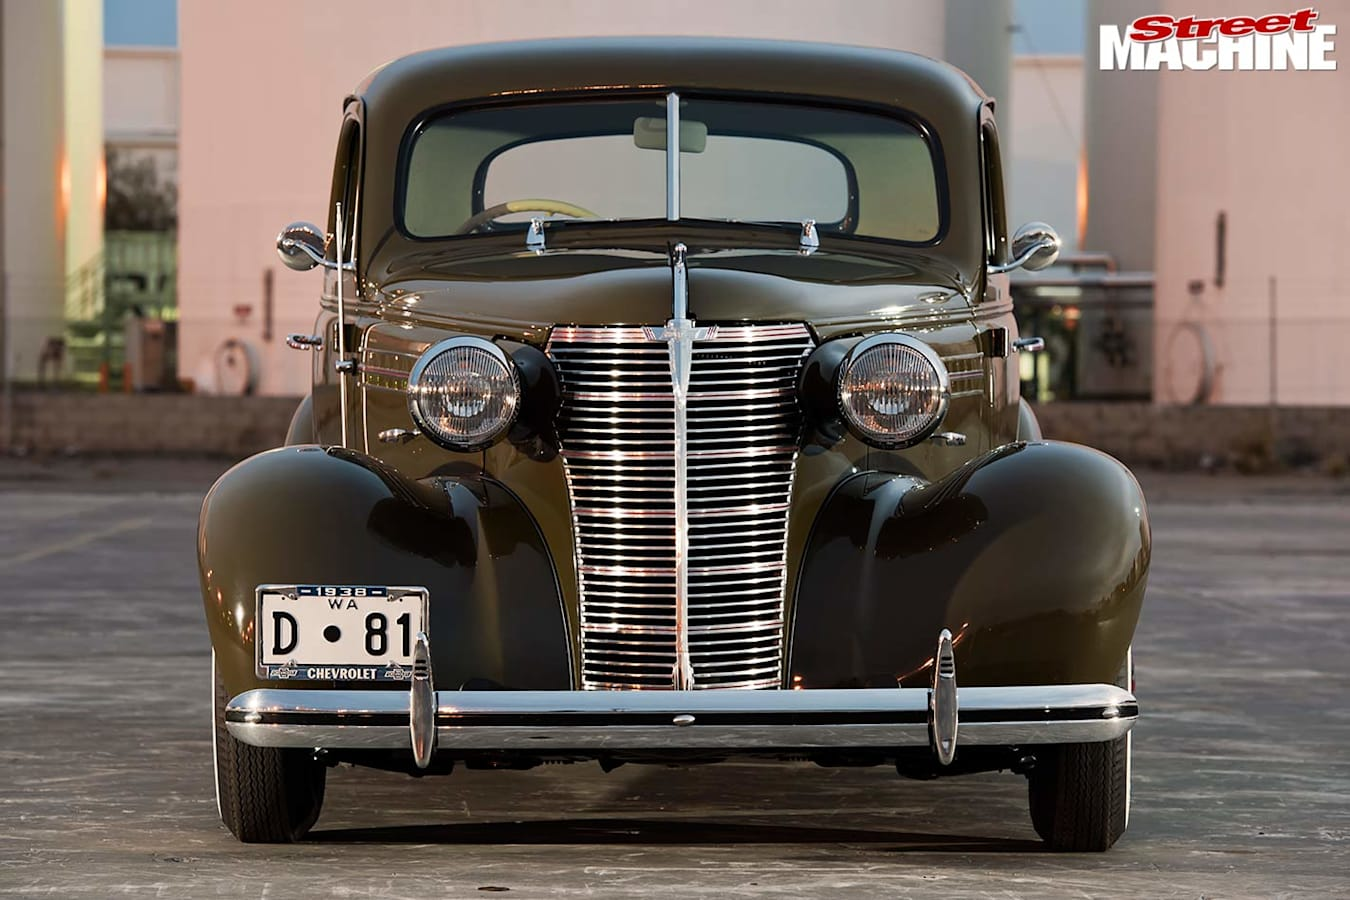 1938 Chev coupe front